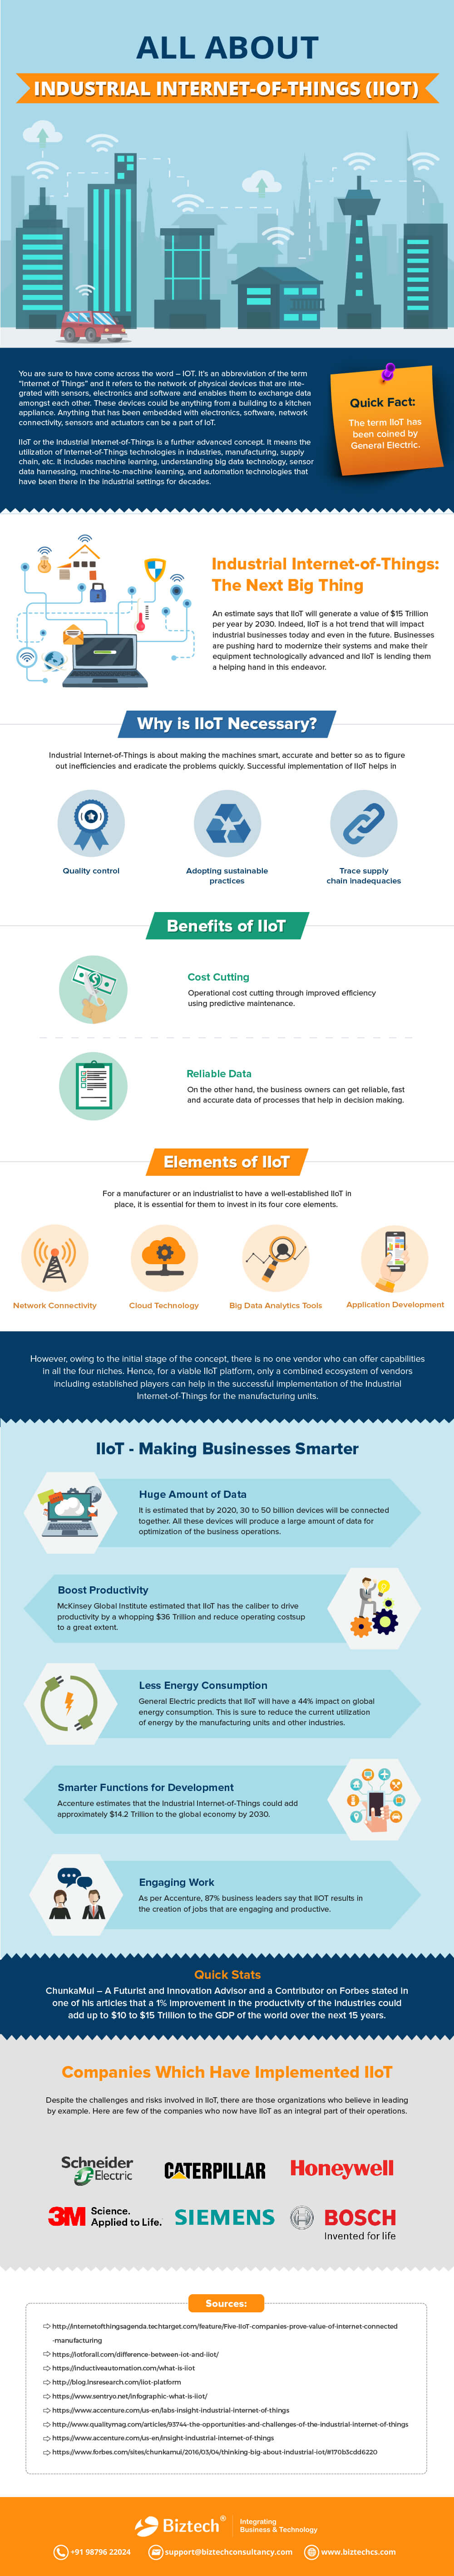 All-About-Industrial-Internet-of-Things-IIoT-infographic-plaza